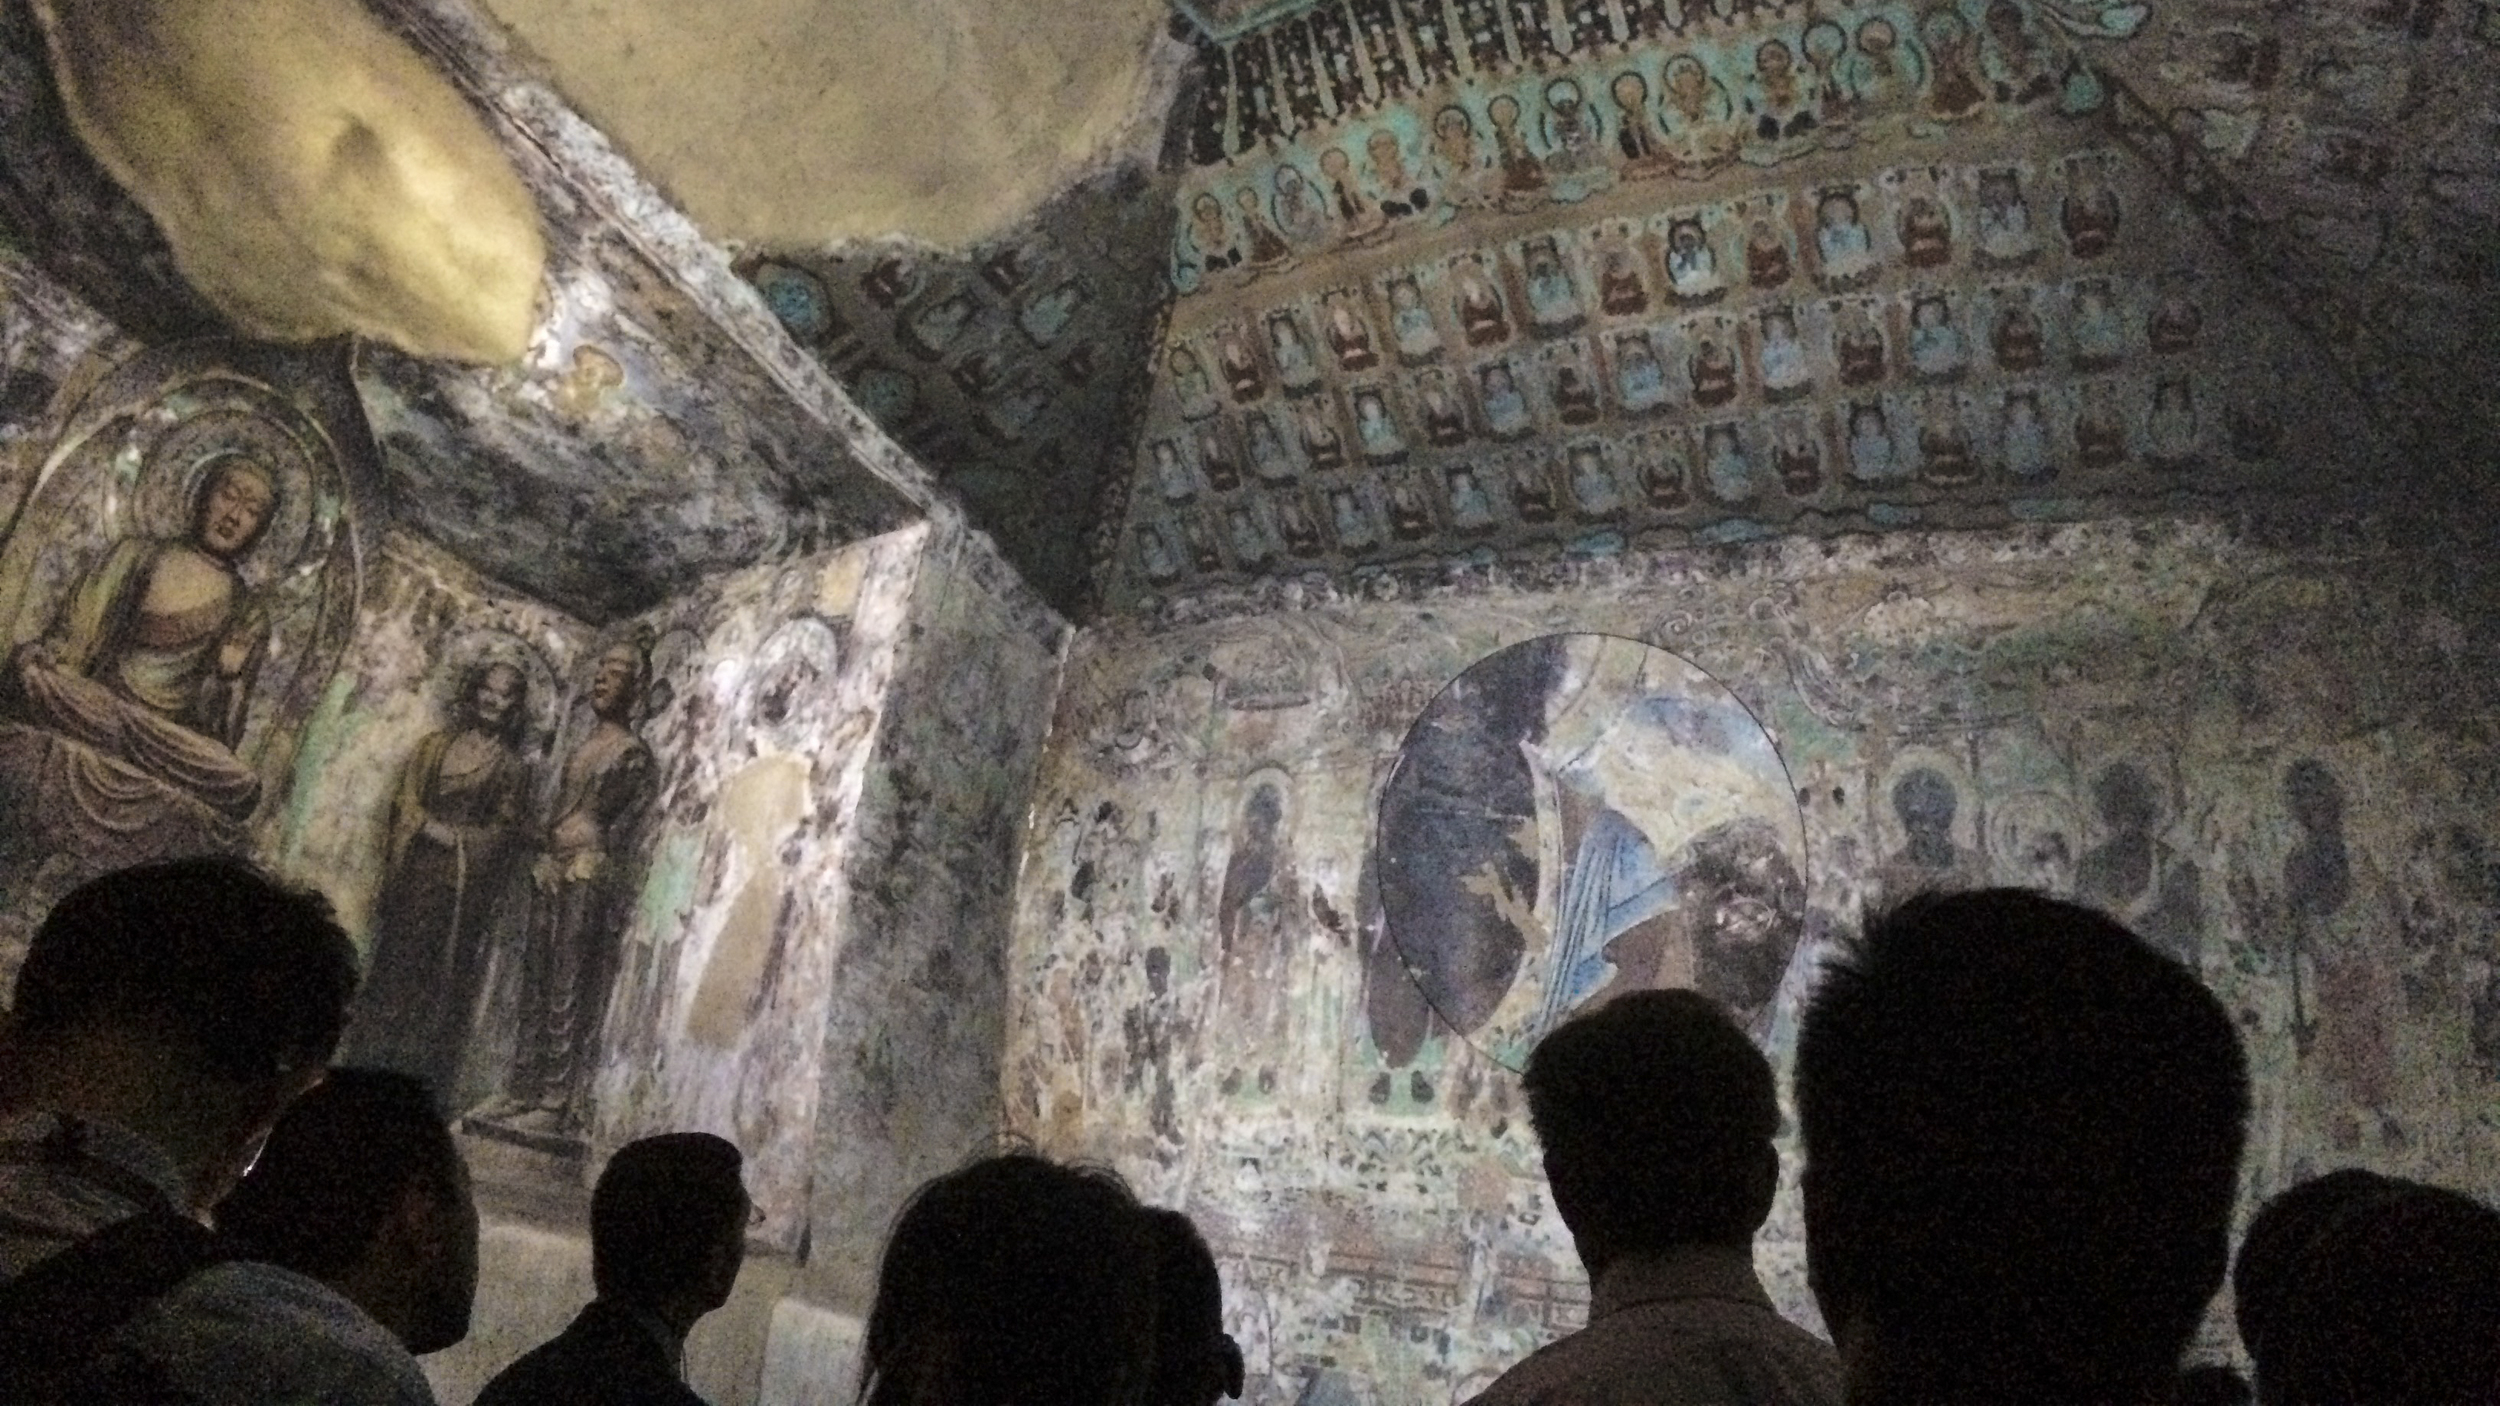 Cave 220 from the Dunhuang Mogao Grottoes, a virtual replica